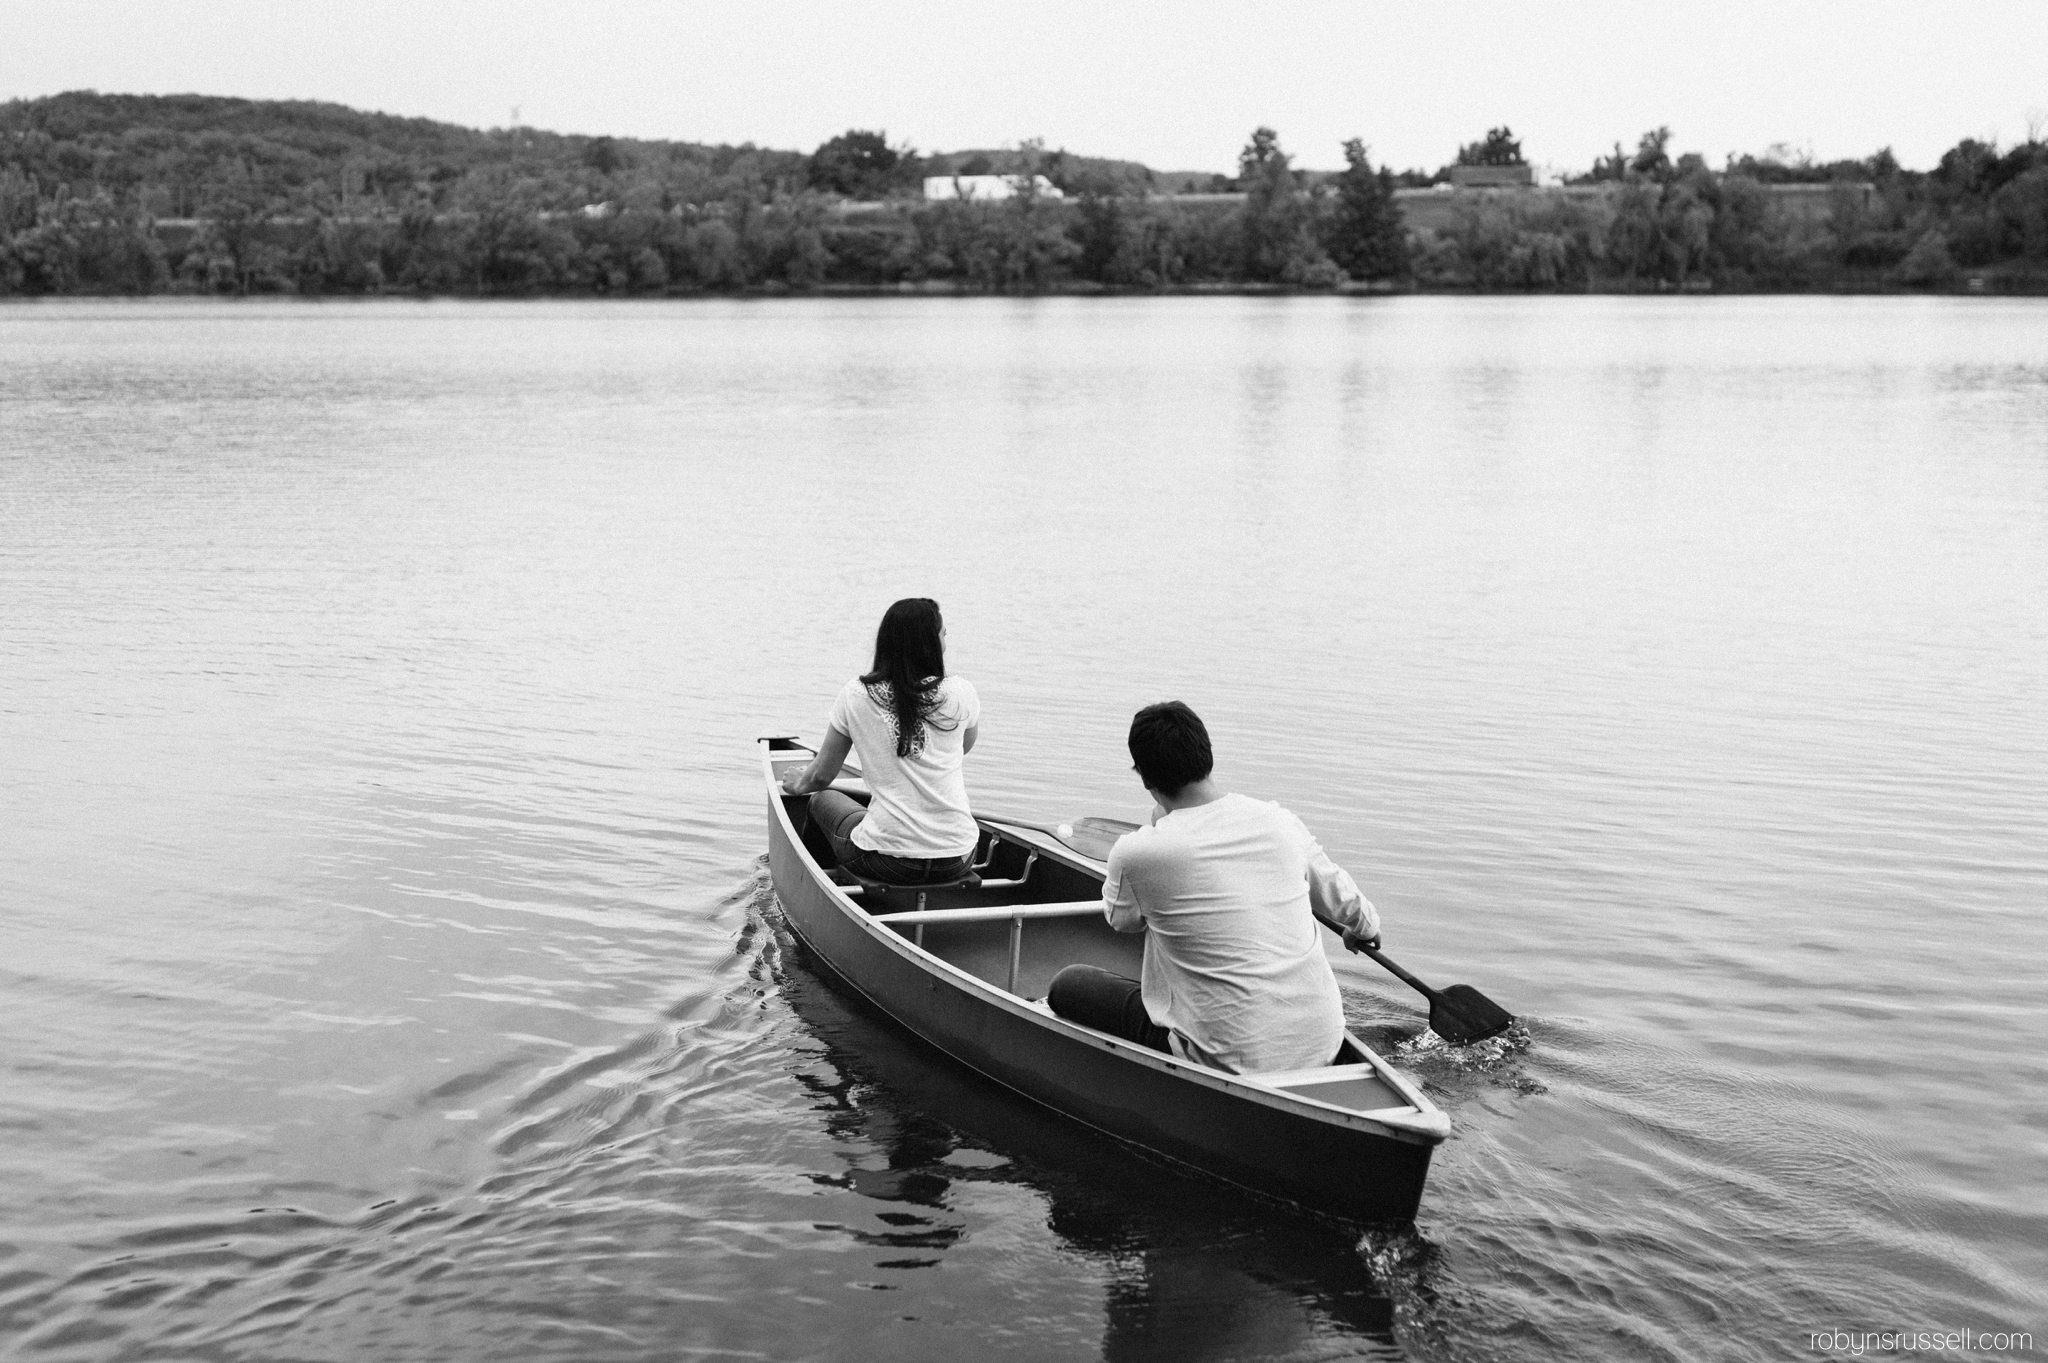 15-going-for-a-kayak-ride-kelso-engagement-session.jpg